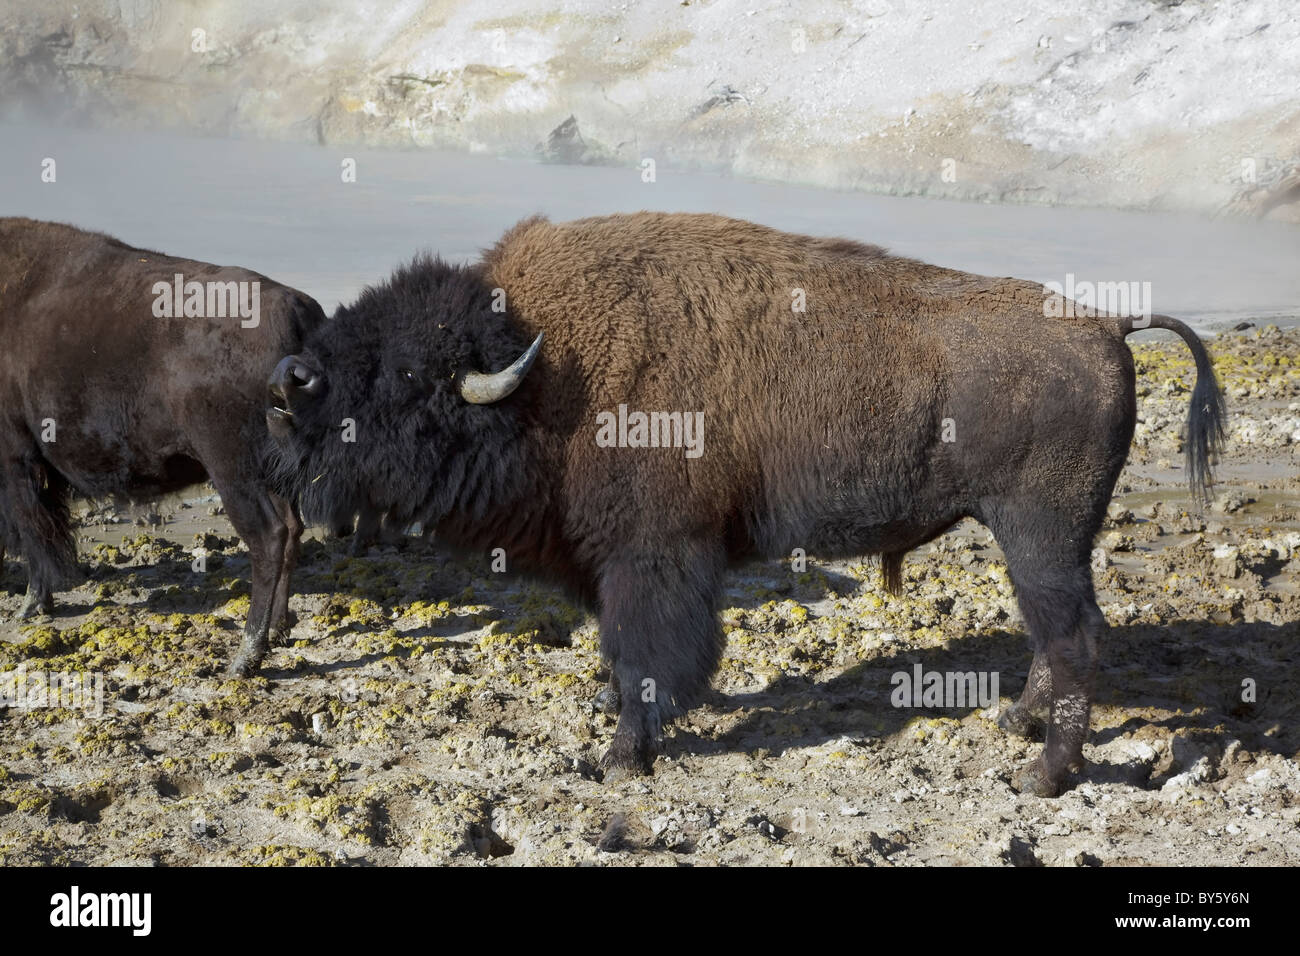 American Bison coming across the mud volcano steam vents on the Cooking hillside in central Yellowstone - Stock Image